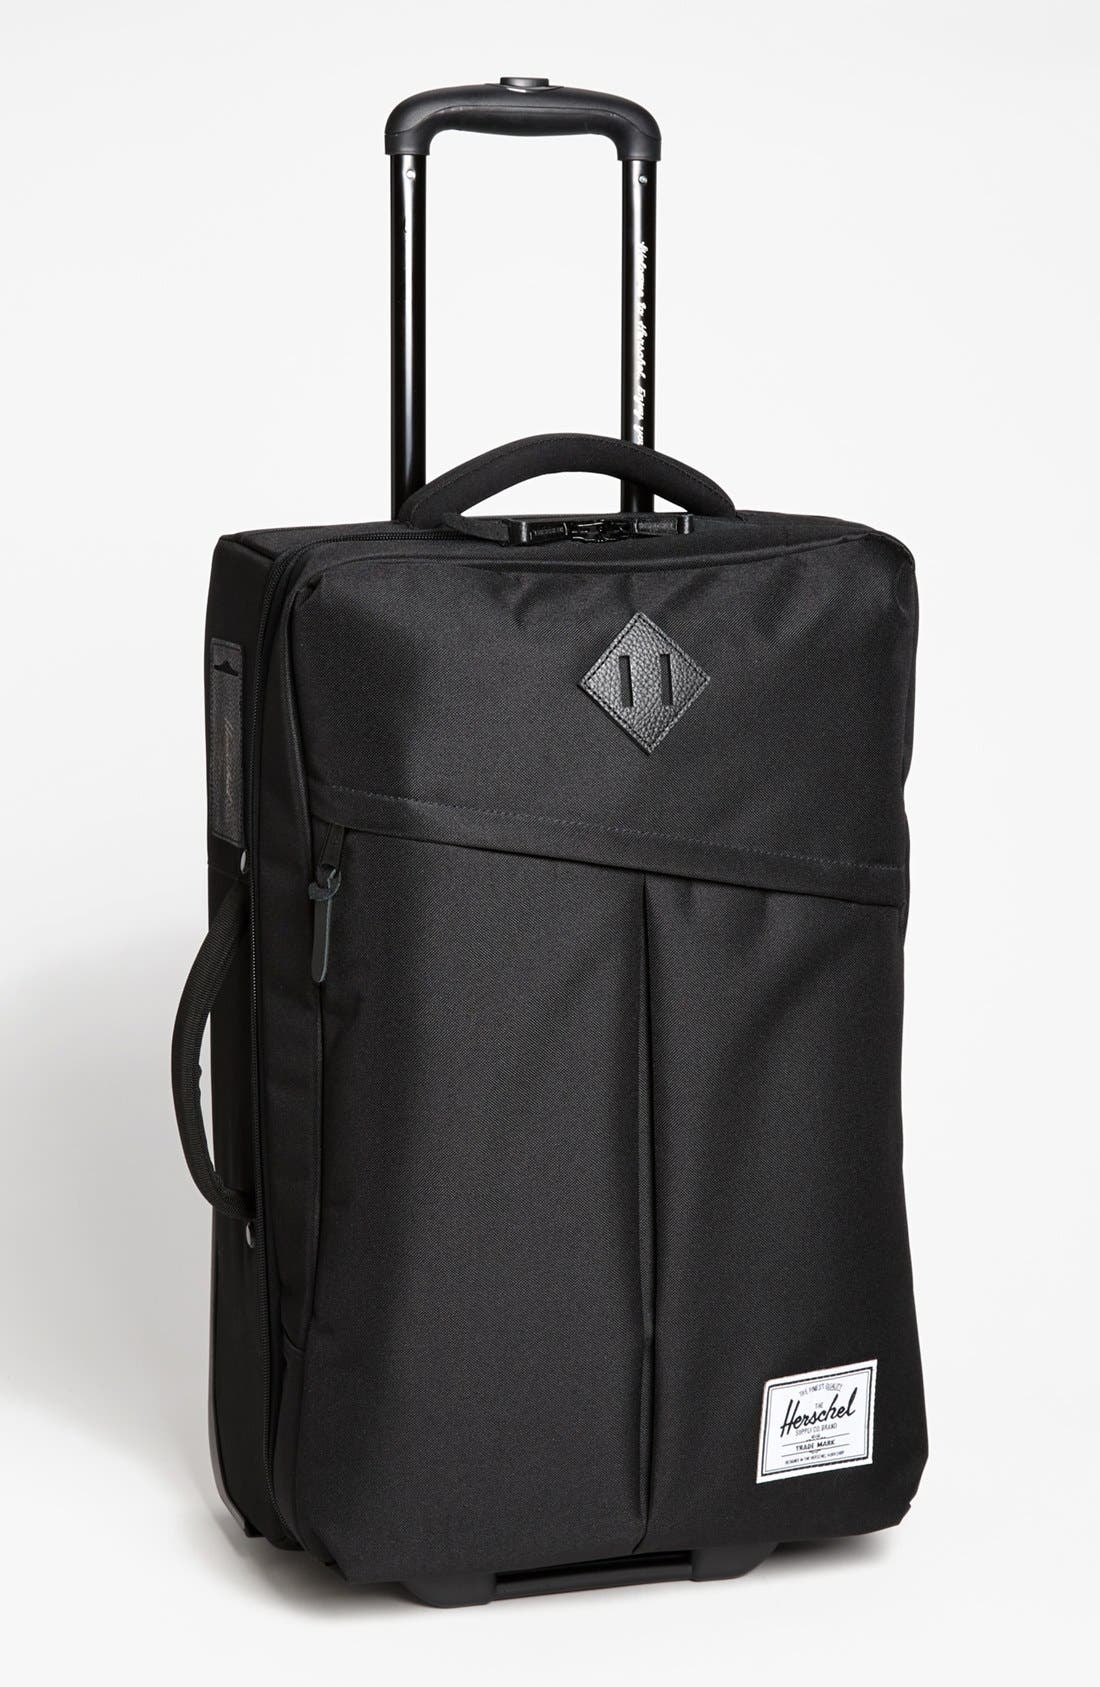 Herschel Supply Co. New Campaign 24-Inch Rolling Suitcase